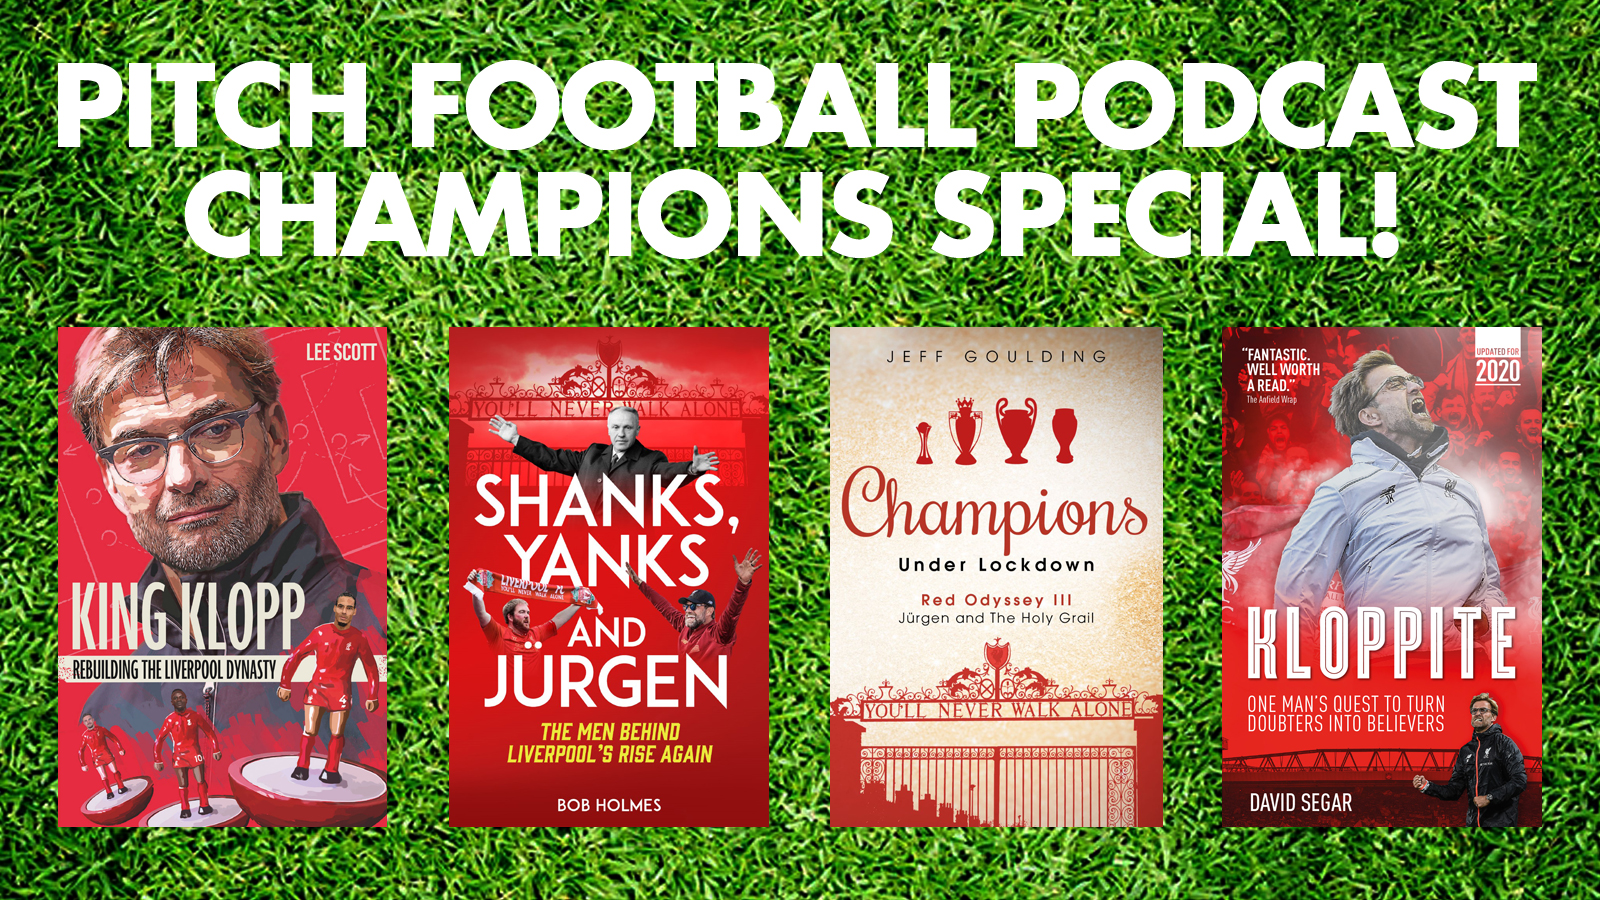 FIRST LIVE PODCAST IS A CHAMPIONS SPECIAL!